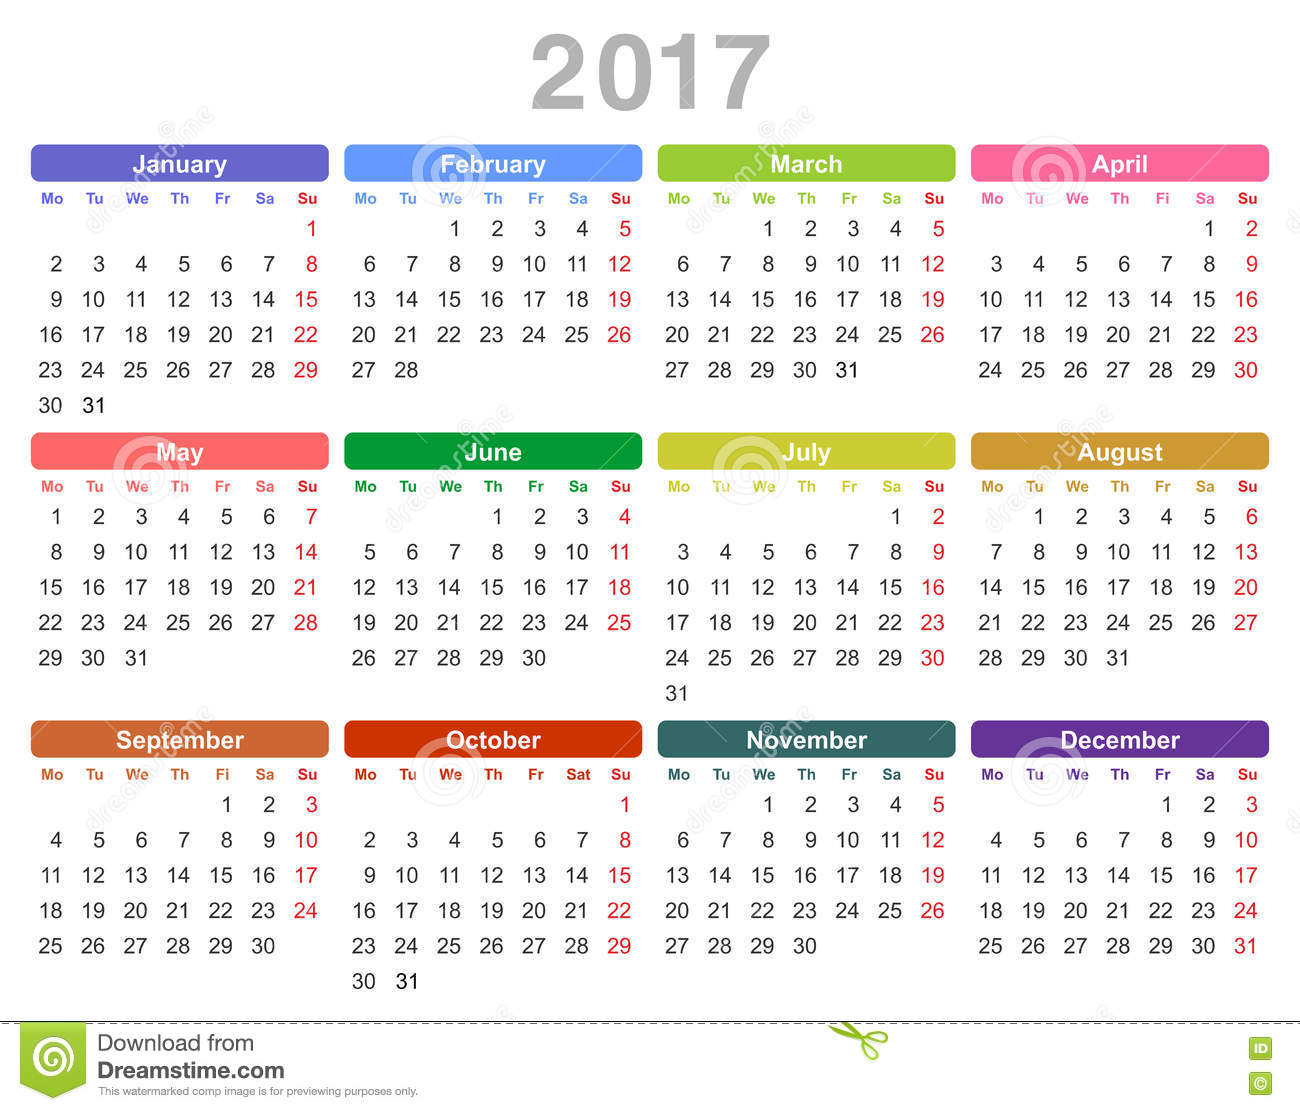 Events Calendar for October 2017 | Victorian Government